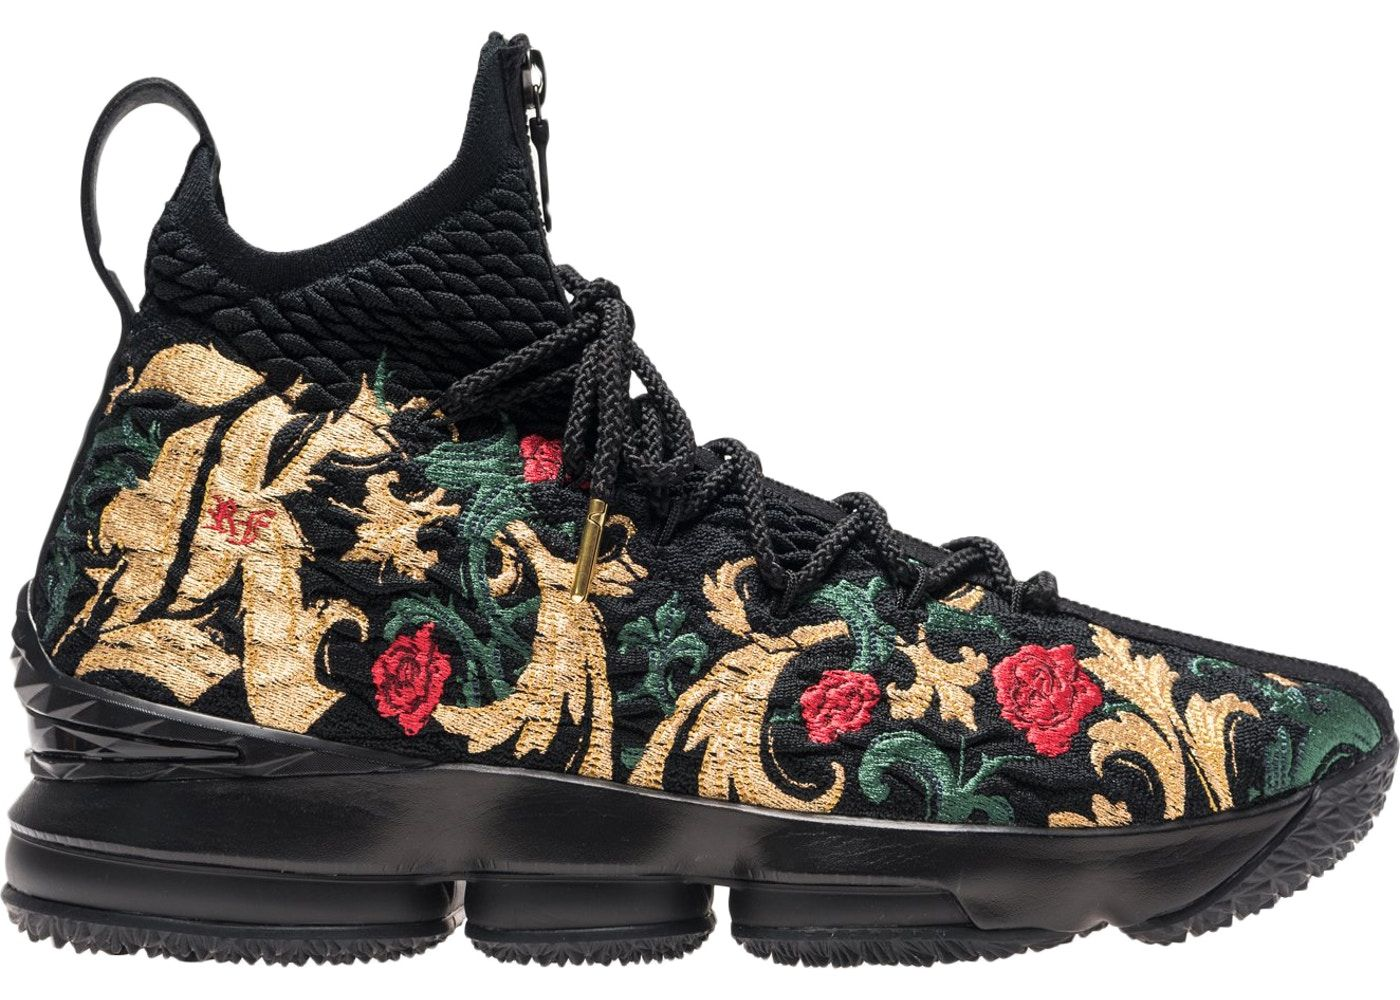 timeless design 64d73 88cc0 Nike LeBron 15 Performance Kith Closing Ceremony in 2019 ...